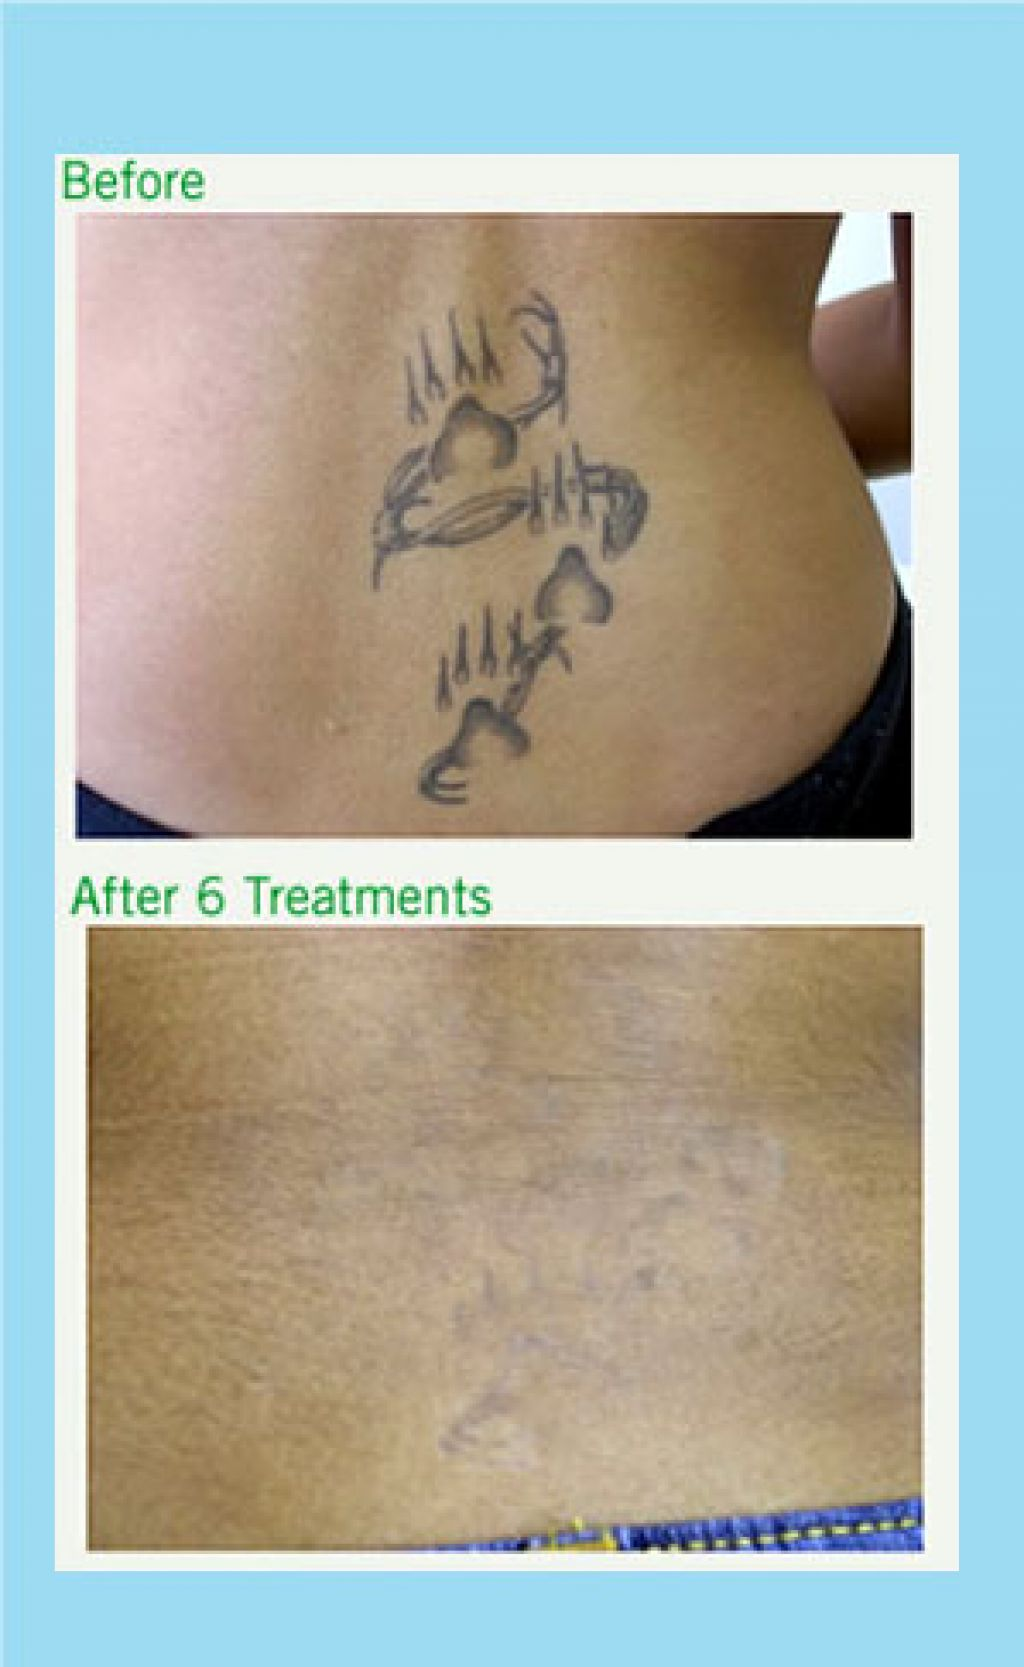 London Laser Tatto Removal After 6 Mounth Pictures